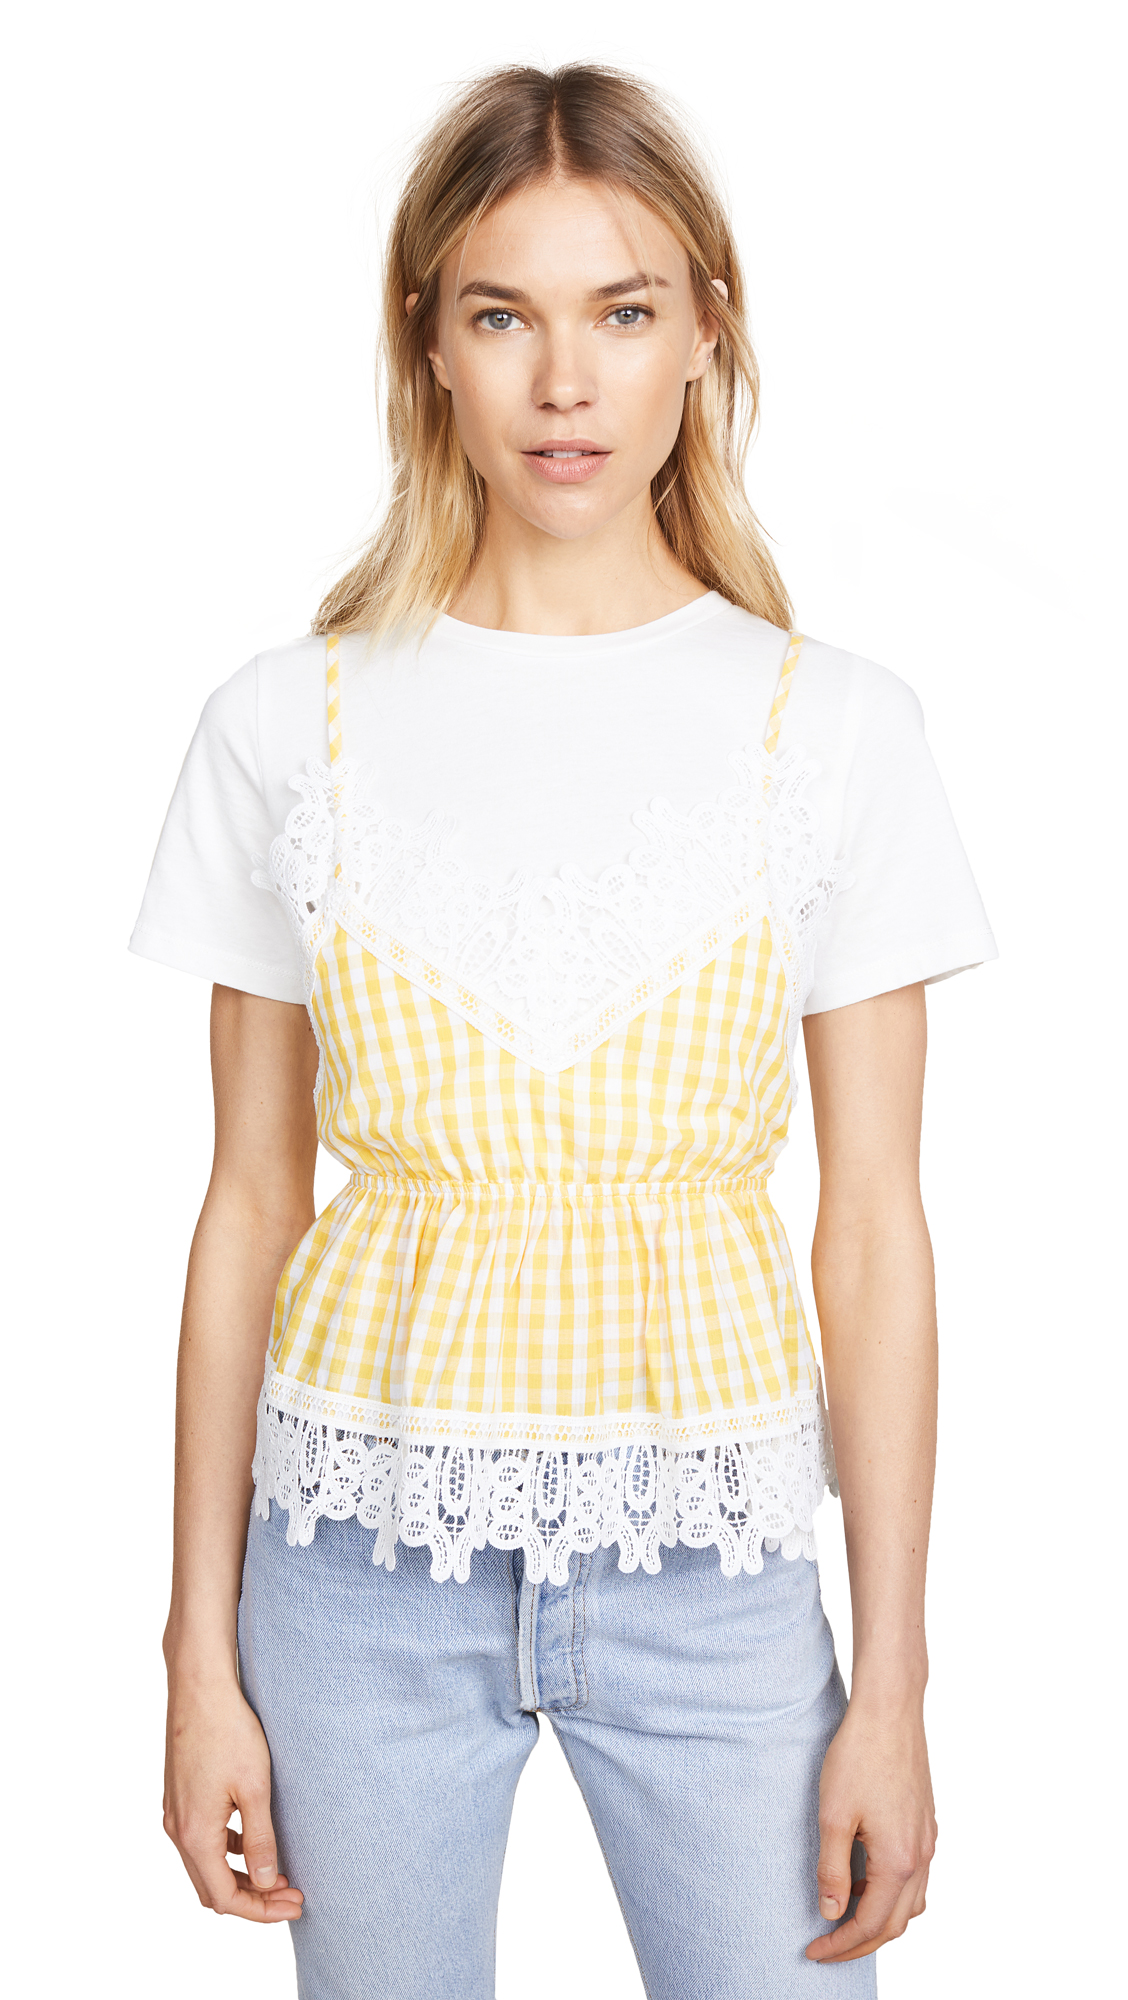 ENGLISH FACTORY T-Shirt with Combo Top - White/Dandelion